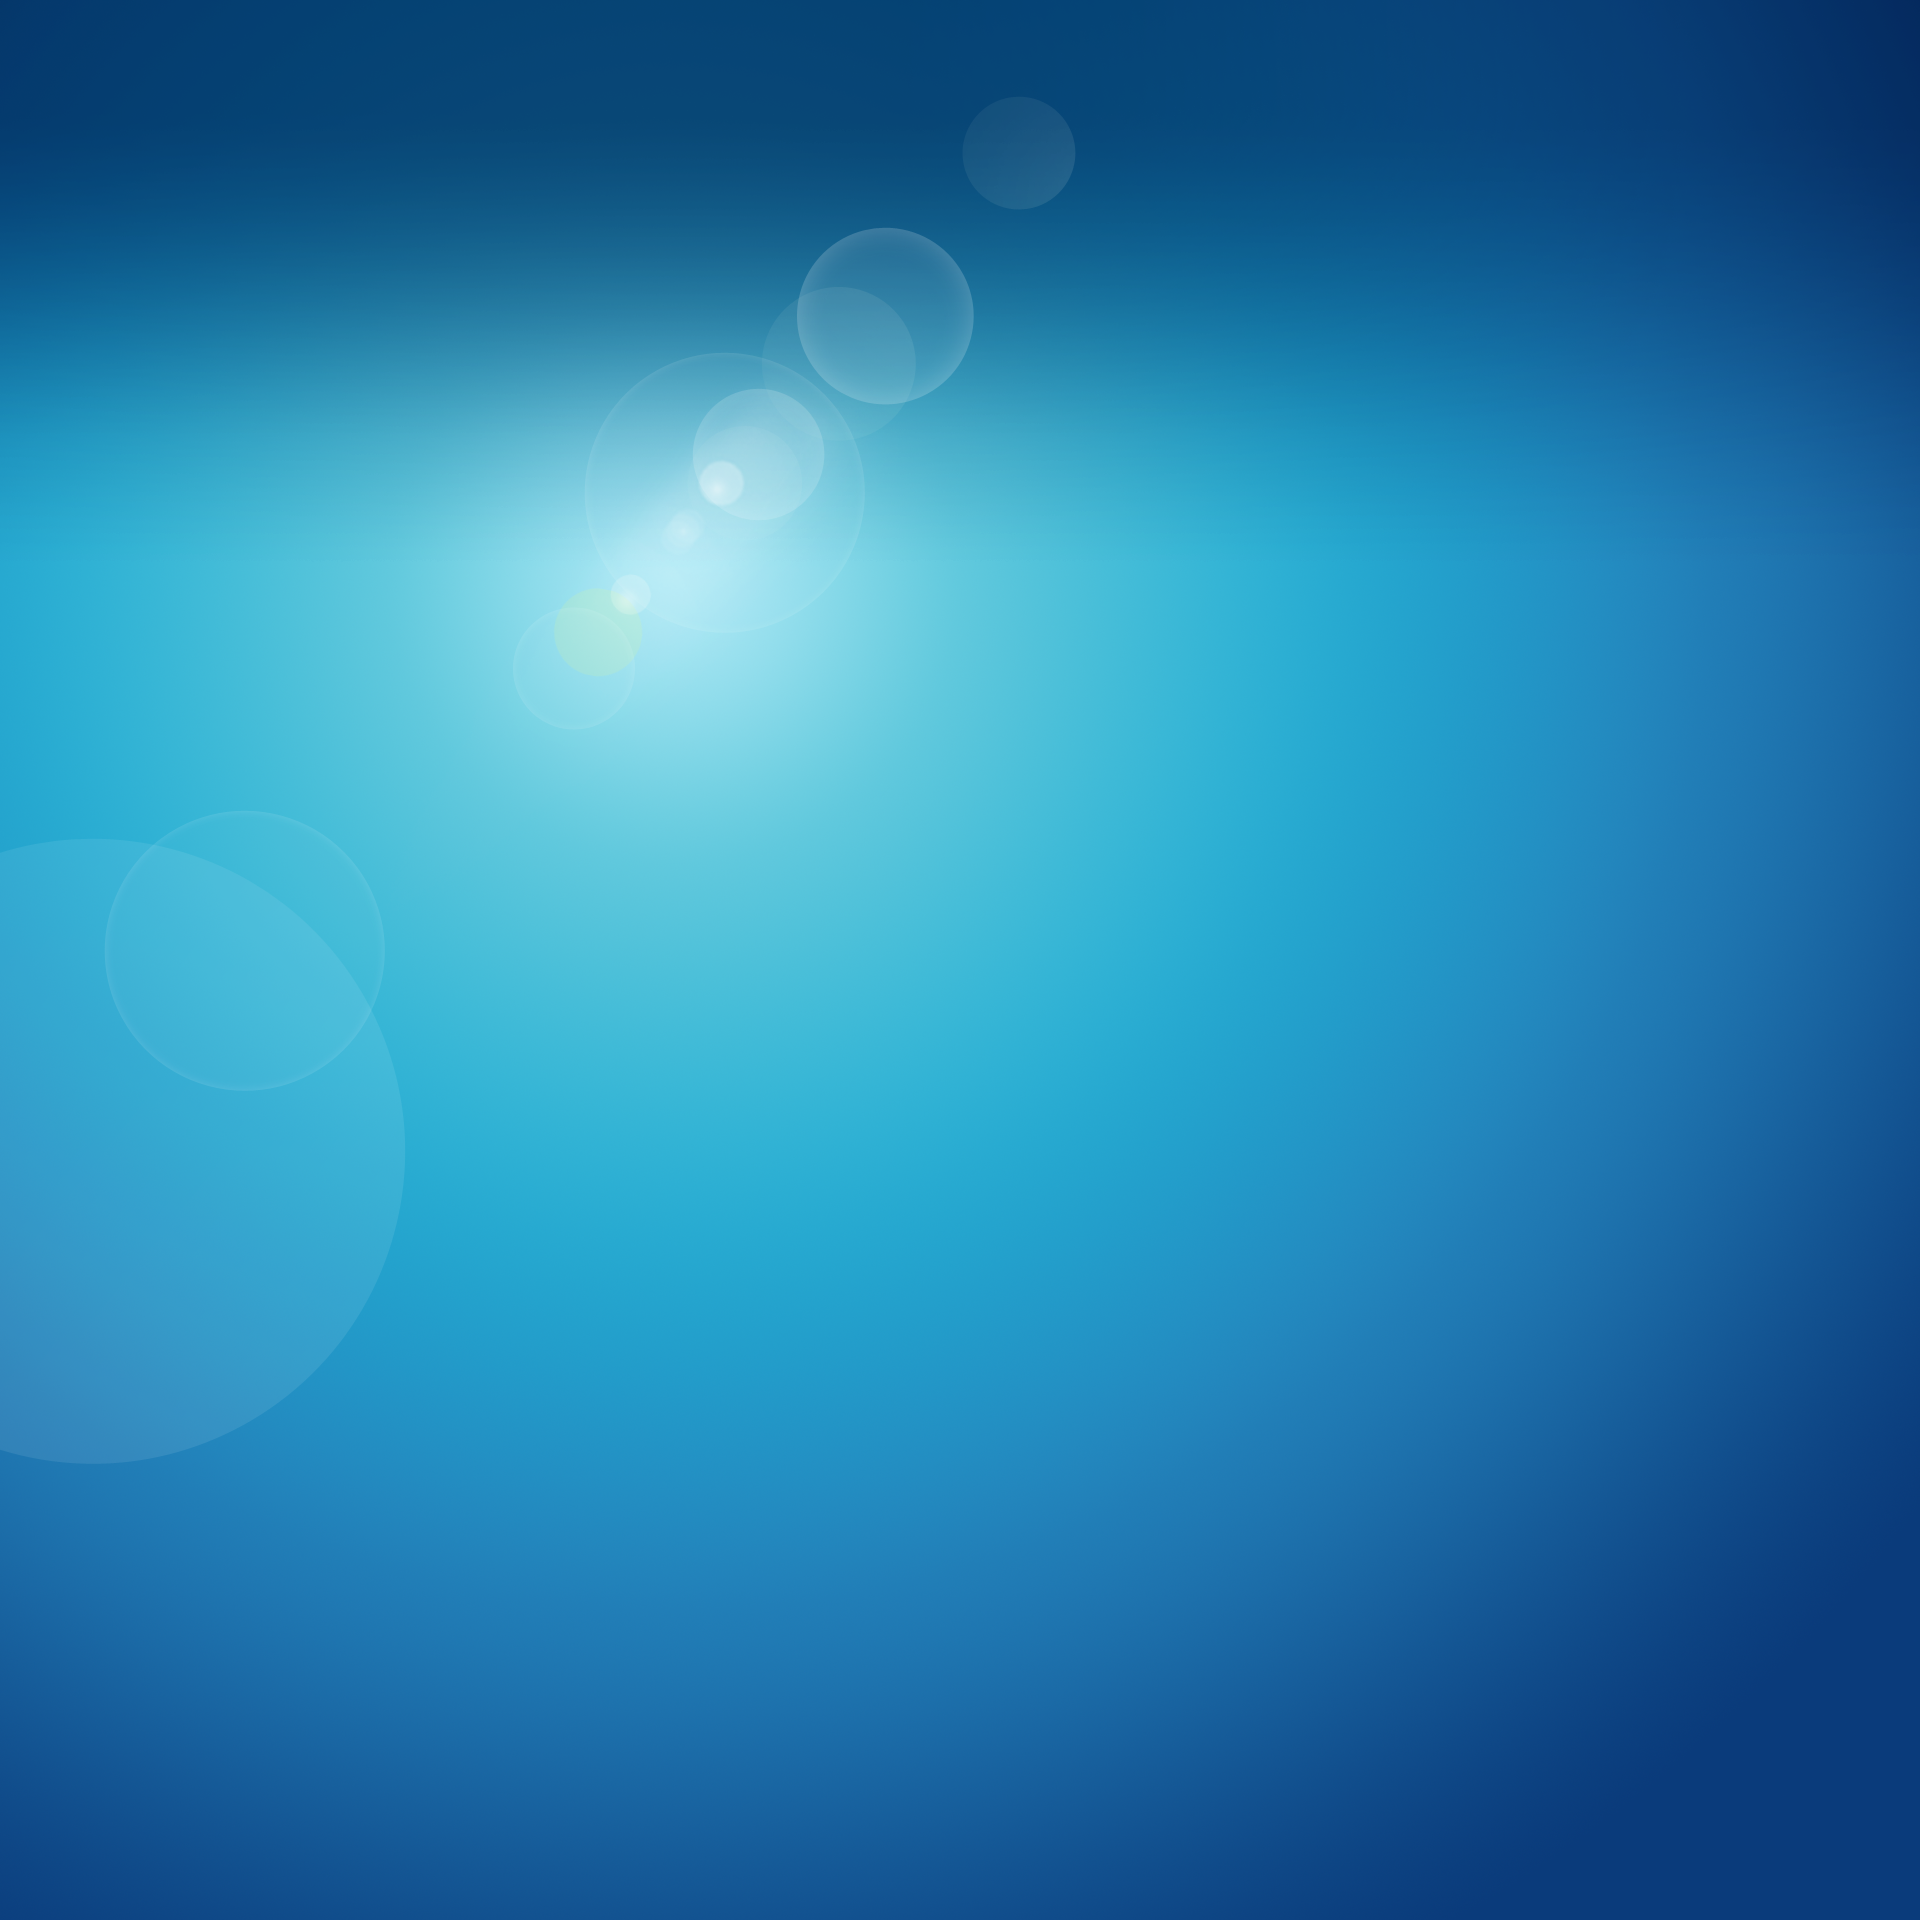 Samsung S4 Wallpapers